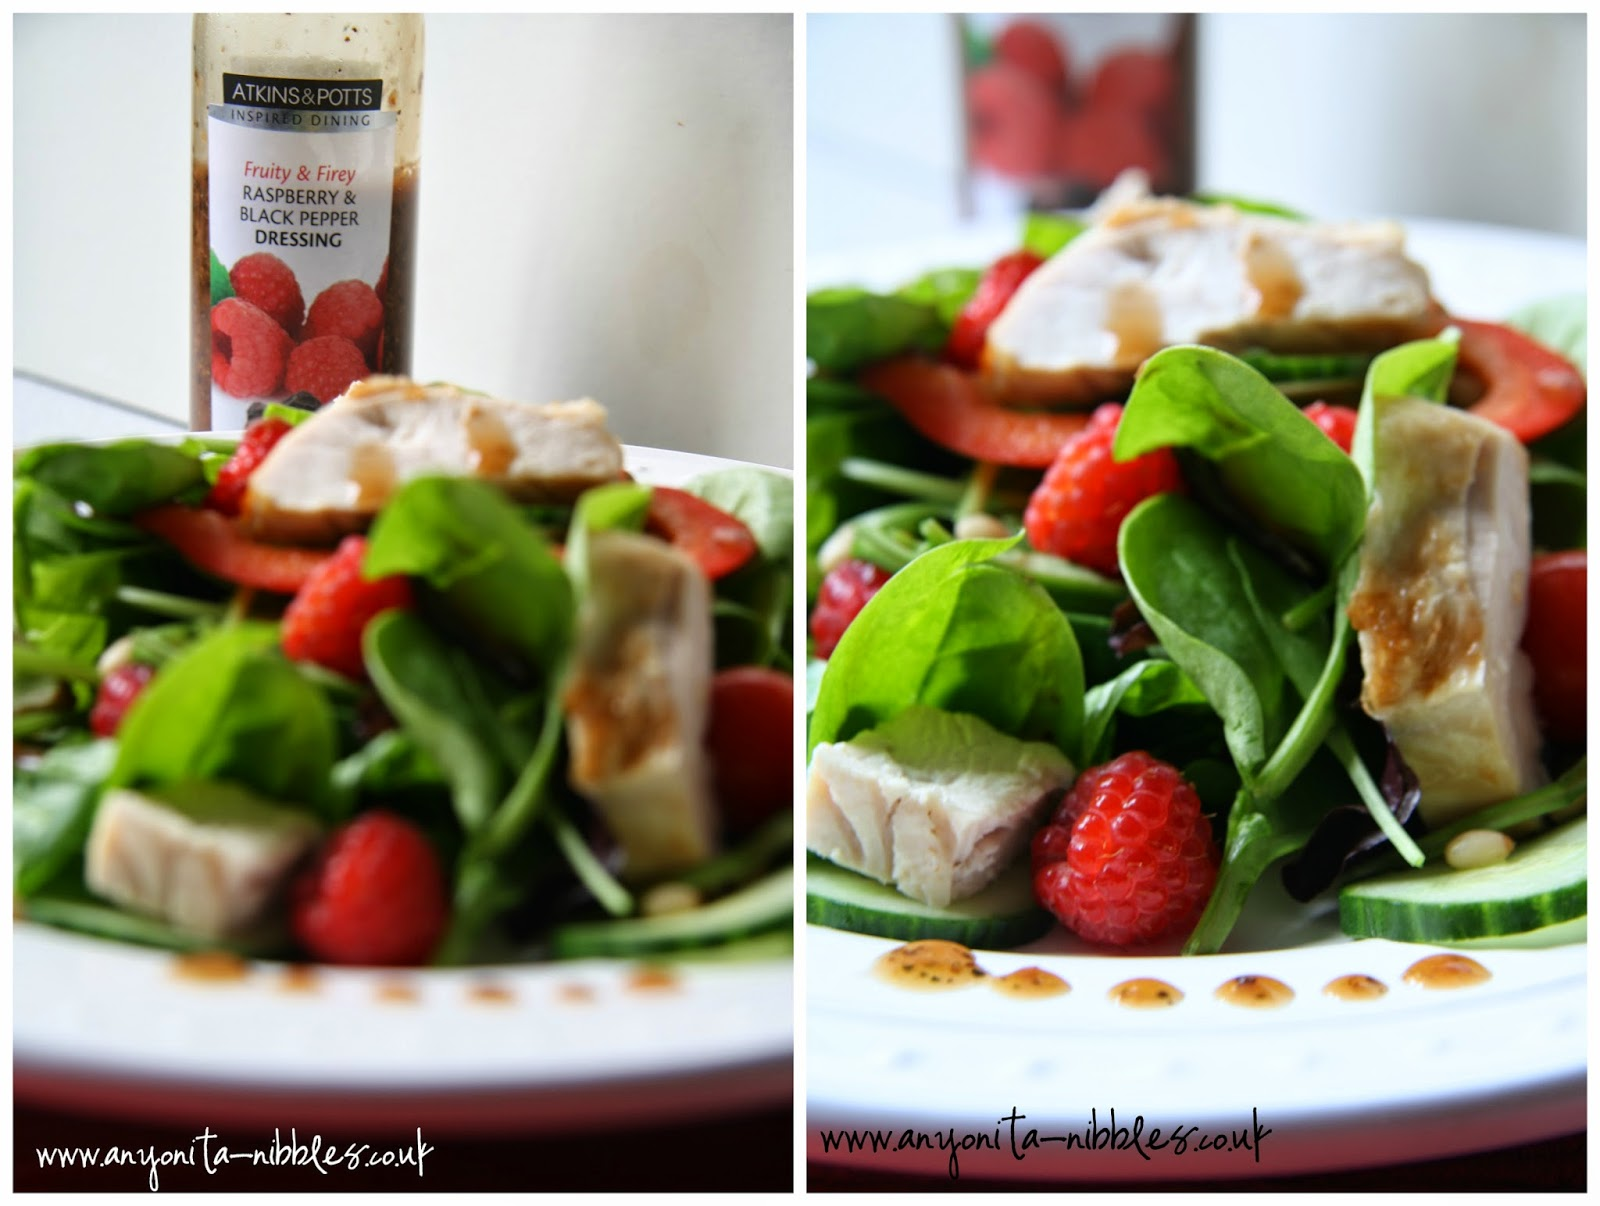 http://www.anyonita-nibbles.co.uk/2014/08/gluten-free-chicken-raspberry-salad-atkins-potts-dressing.html